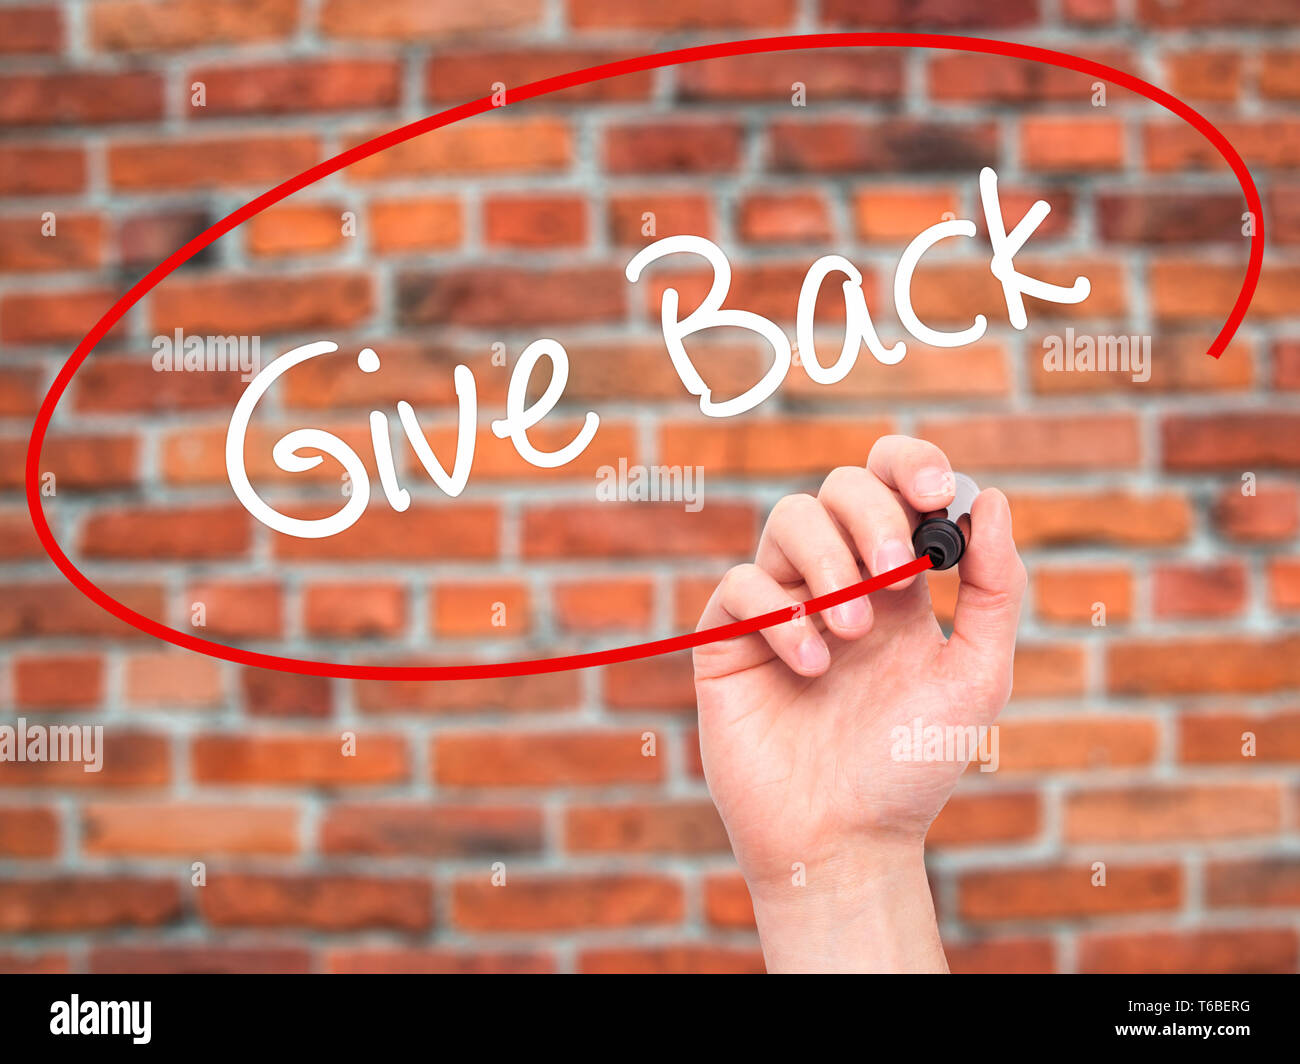 Man Hand writing Give Back with black marker on visual screen - Stock Image